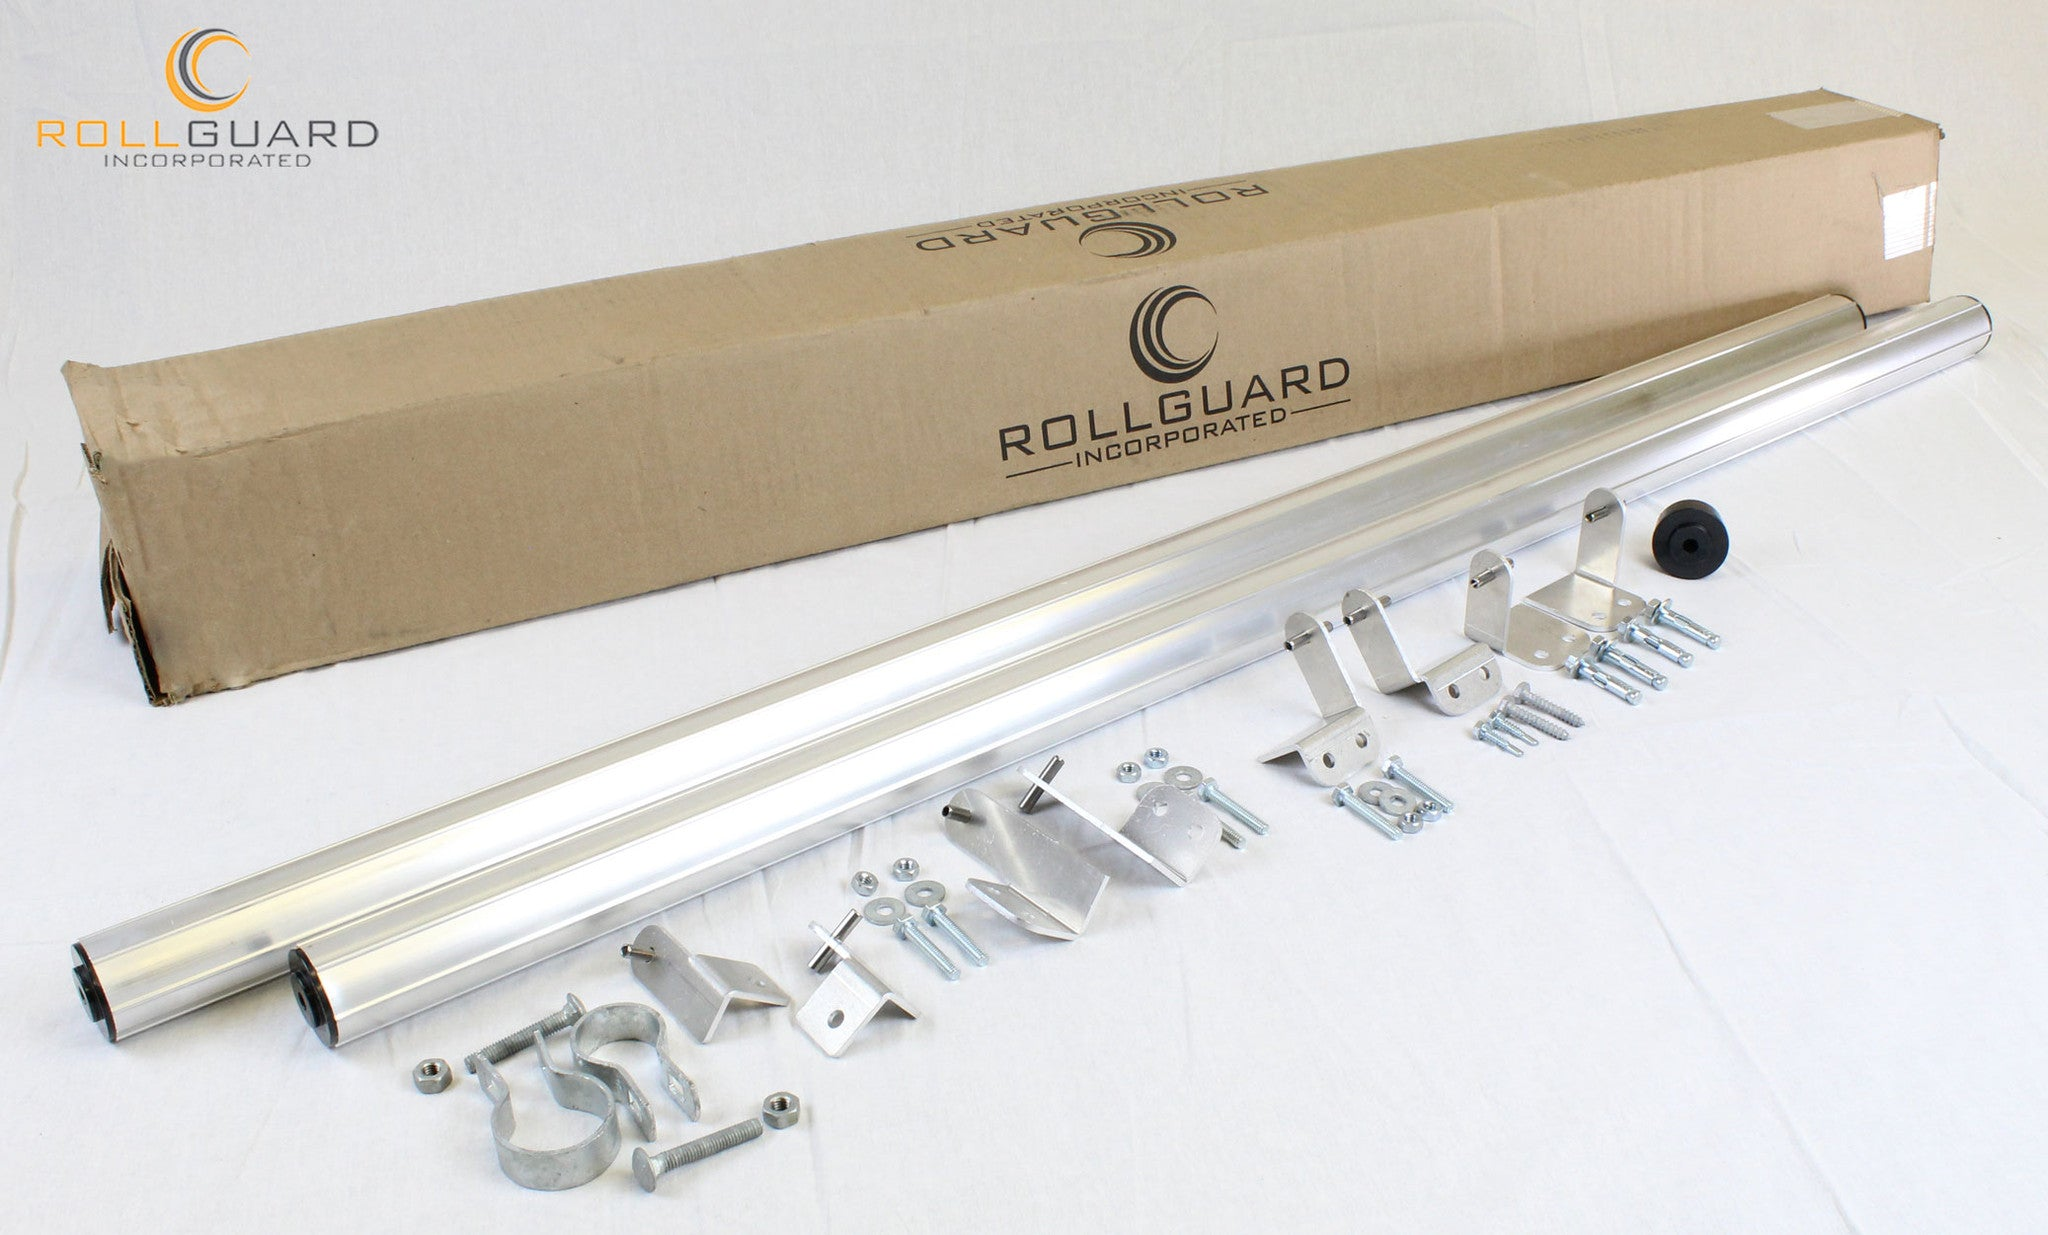 25 Foot Fence Coyote Roller Kit 7 Rollers 9 Brackets 2 End Caps